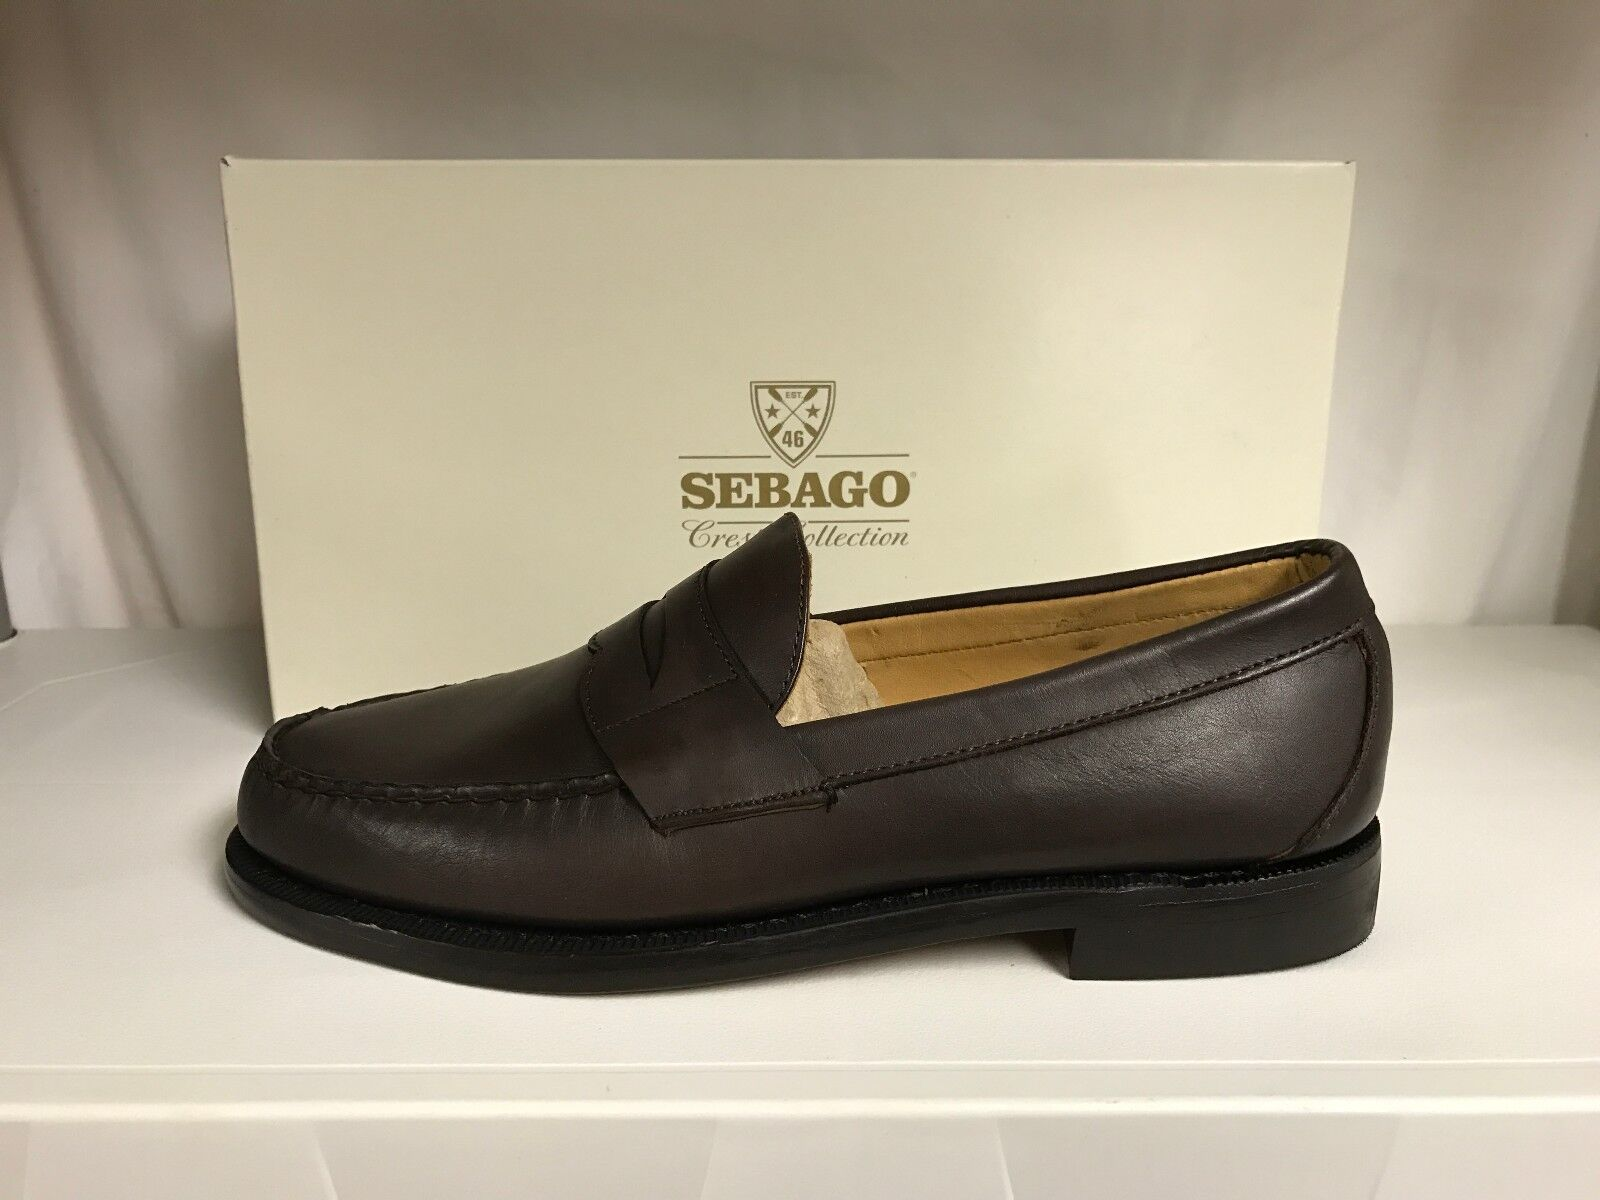 Sebago Crest Cayman II Mens Boat Shoes Leather Penny Loafers Moccasins Brown